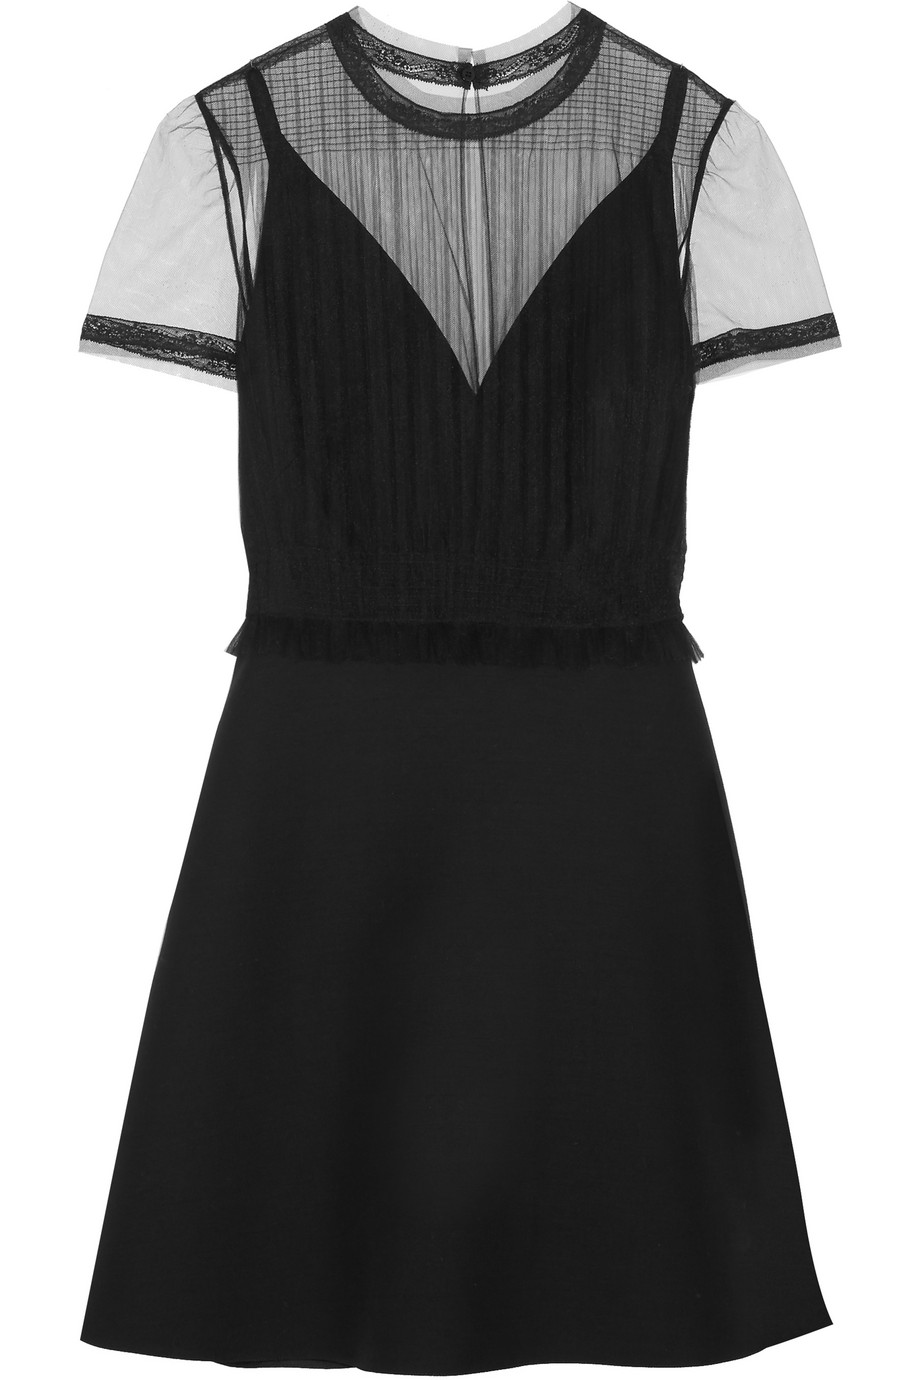 Valentino Tulle-Panelled Wool and Silk-Blend Crepe Mini Dress, Black, Women's, Size: 40